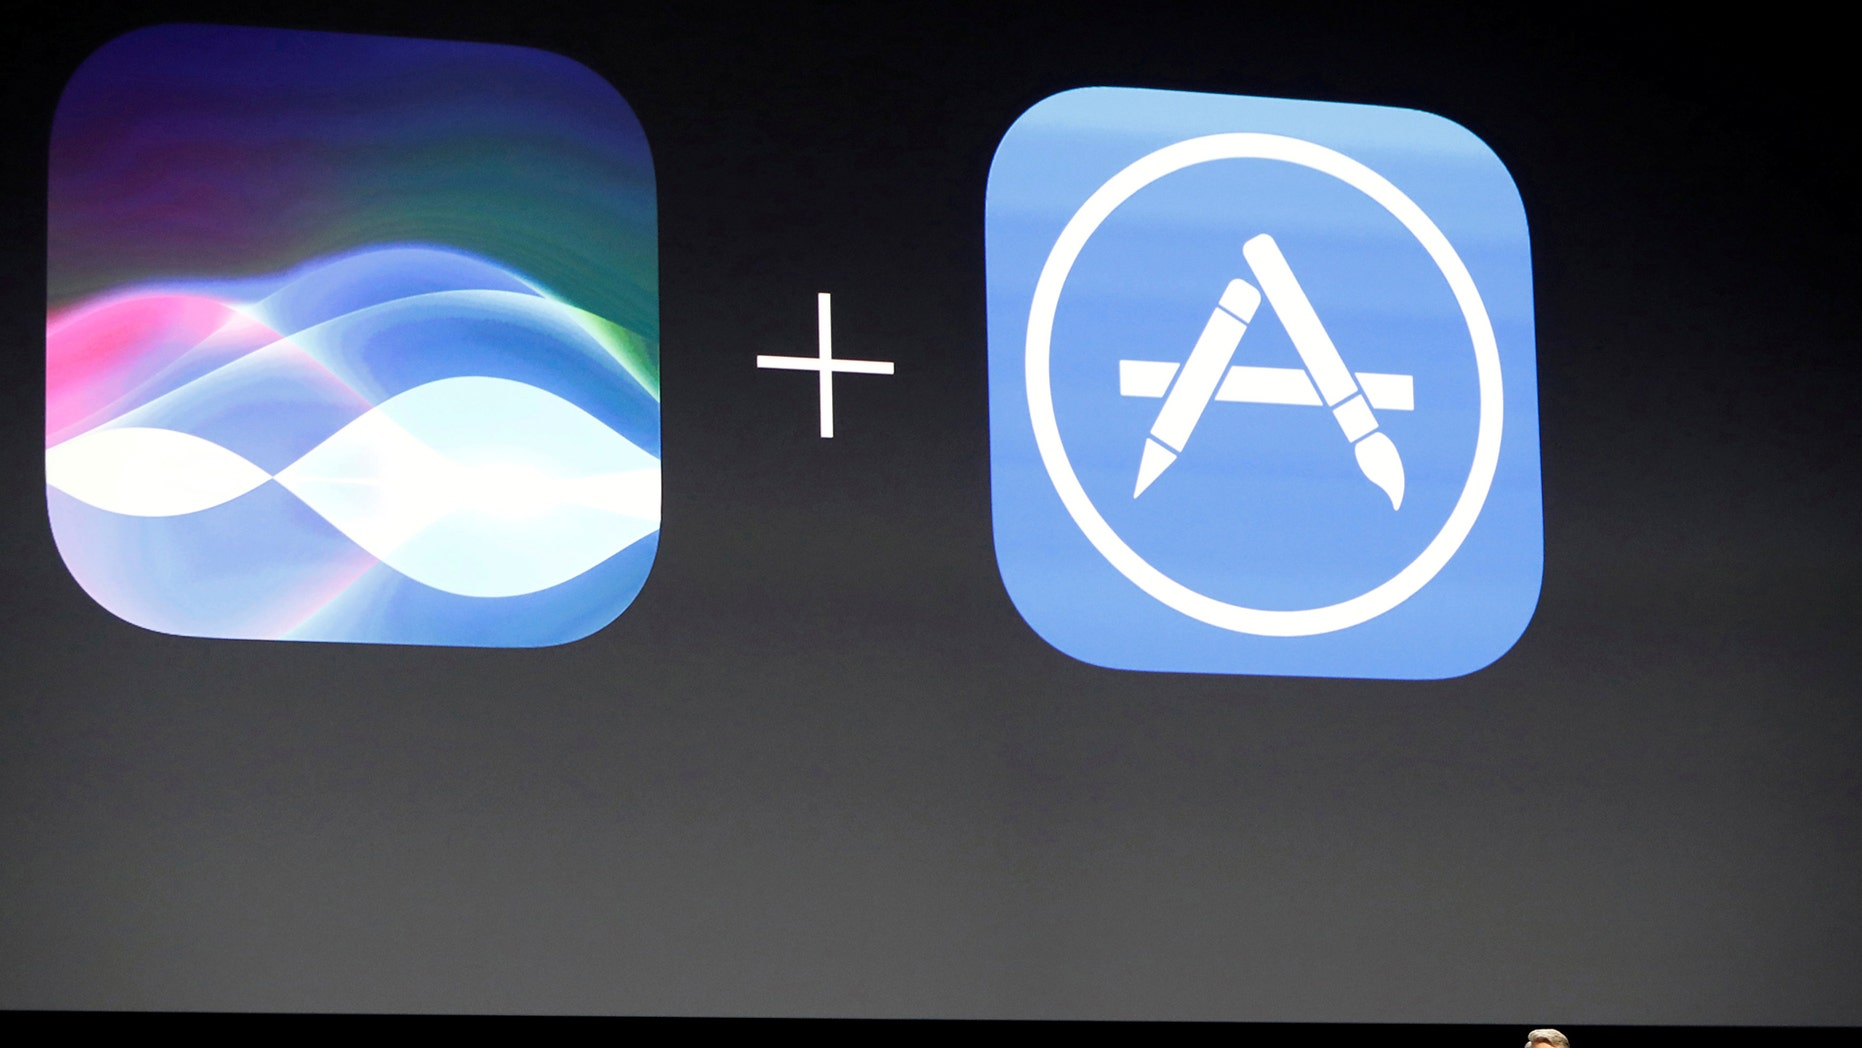 File photo: Craig Federighi, Senior Vice President of Software Engineering for Apple Inc., announces that the company's Siri assistant for iOS will be opened for developers at the company's World Wide Developers Conference in San Francisco, California, U.S. June 13, 2016. REUTERS/Stephen Lam